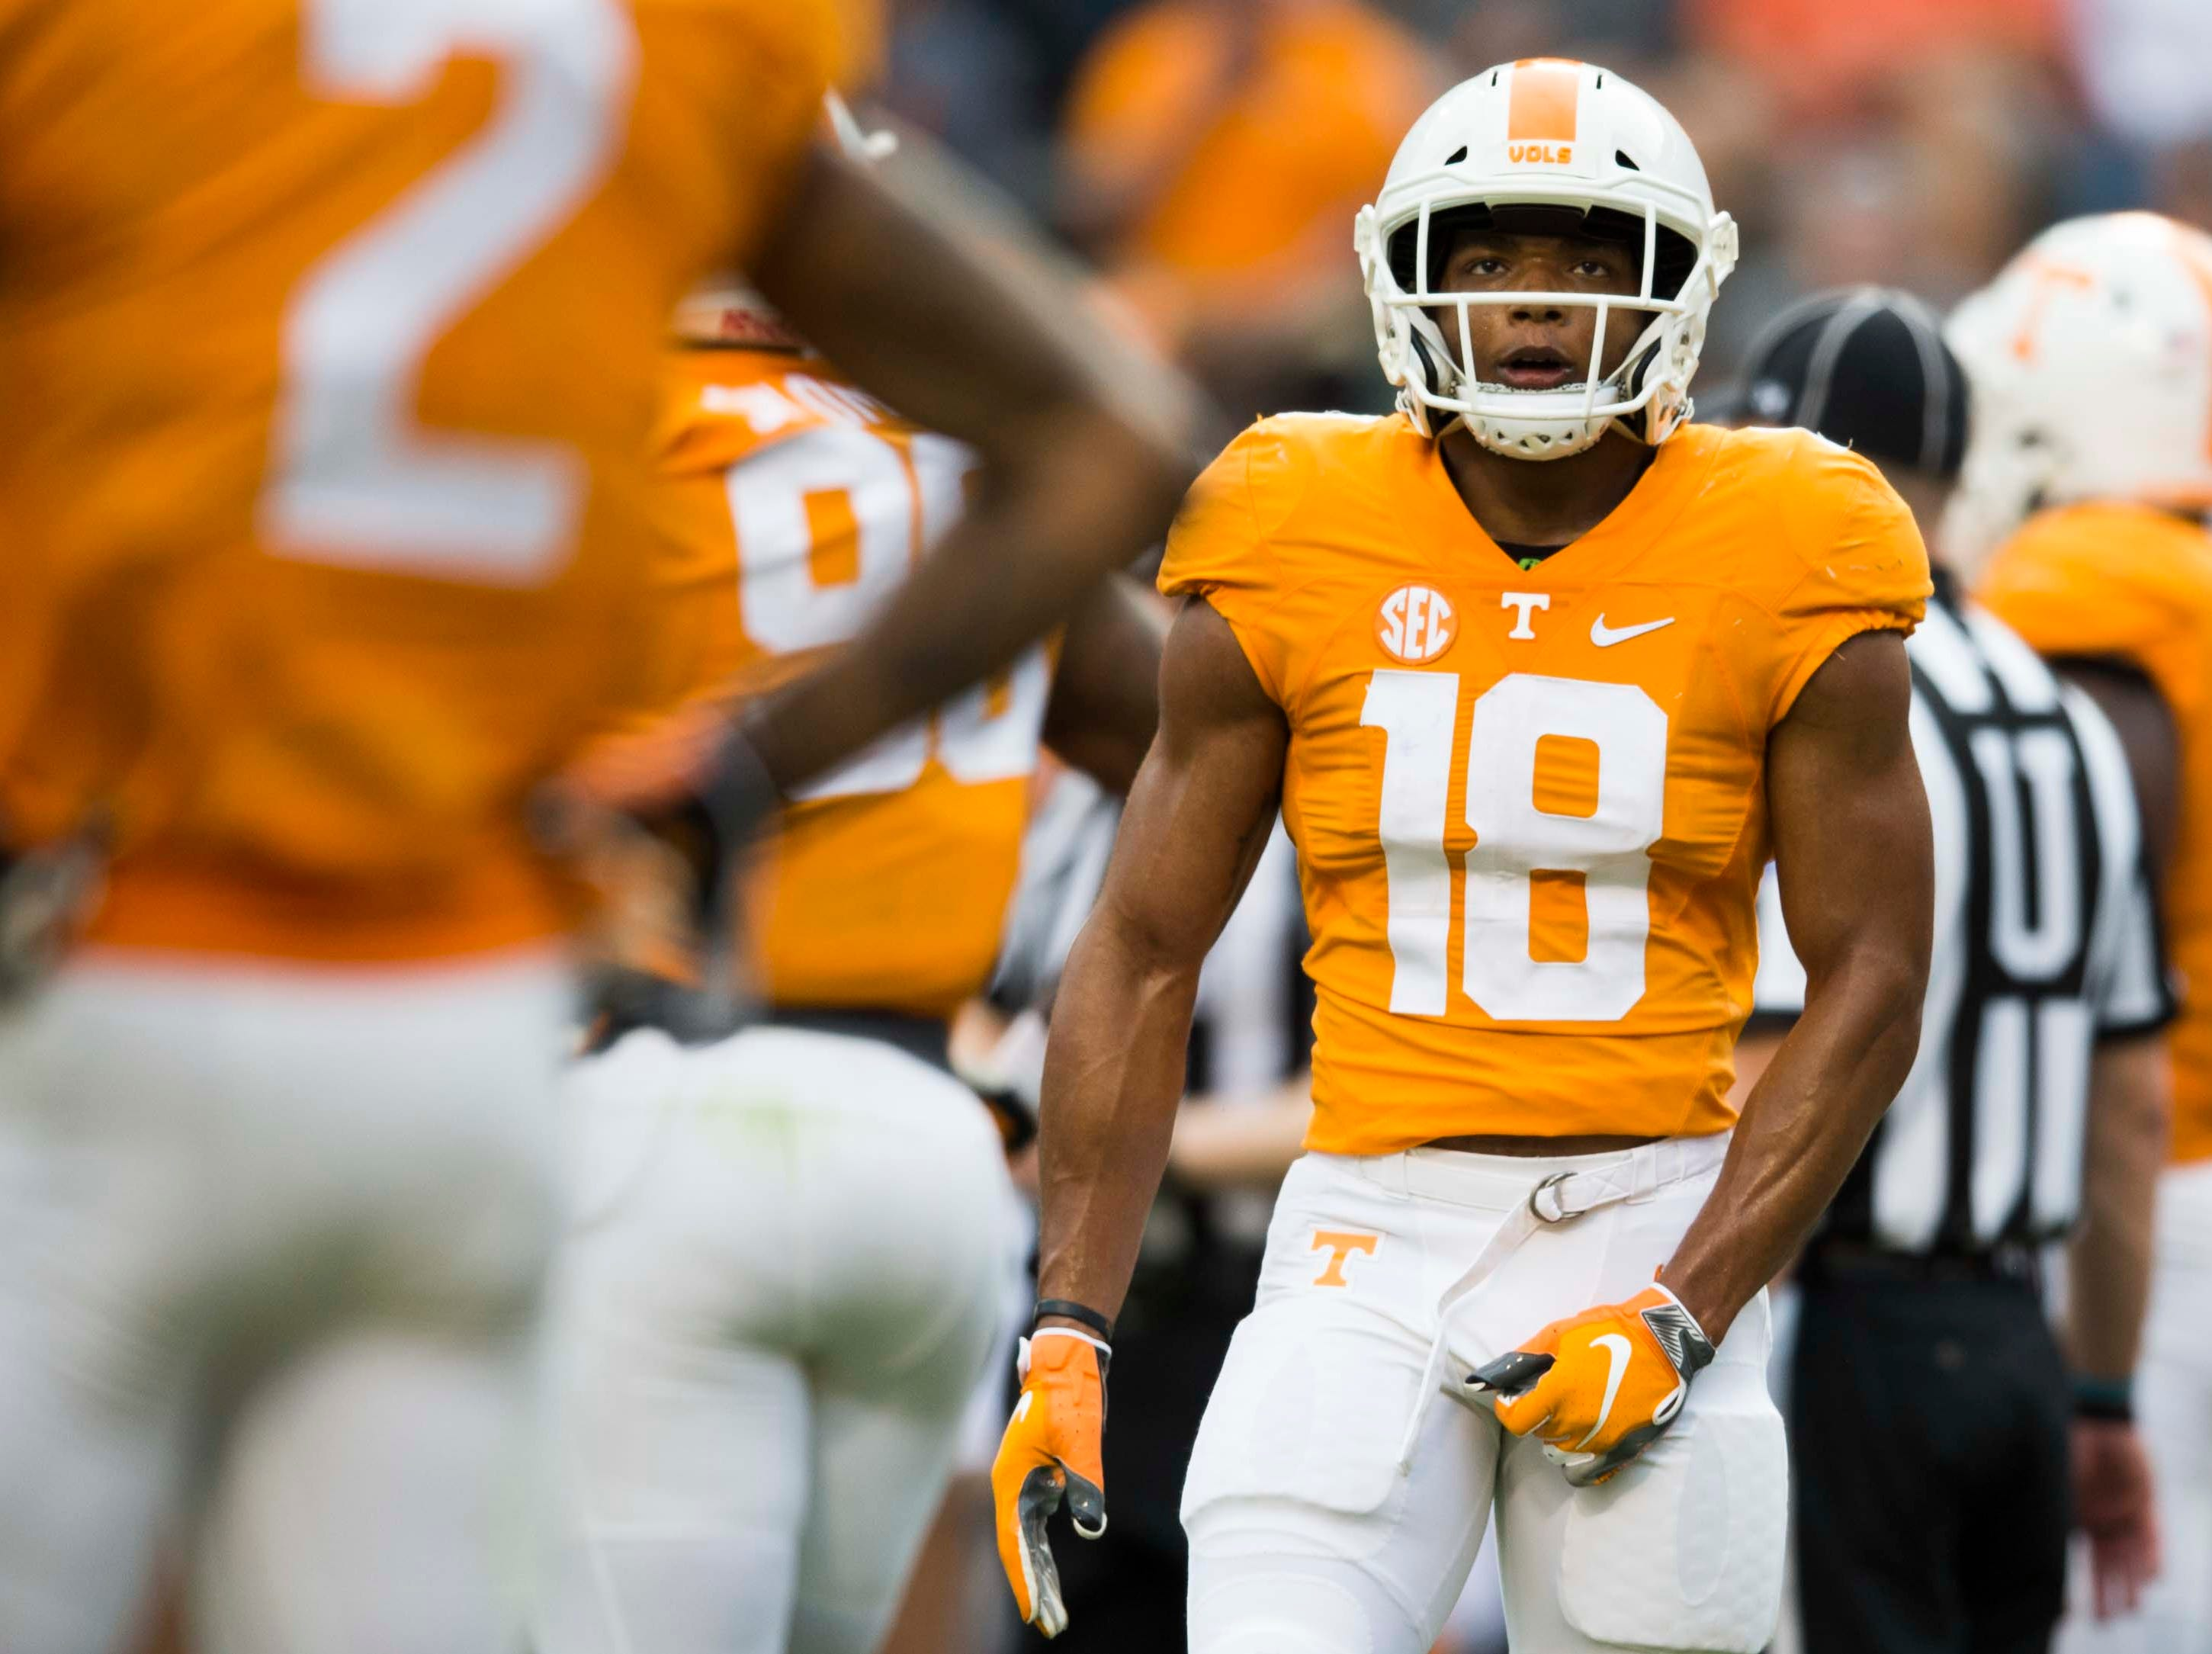 Tennessee defensive back Nigel Warrior (18)  stands on the field during the Vols spring game in Neyland Stadium in Knoxville Saturday, April 13, 2019.